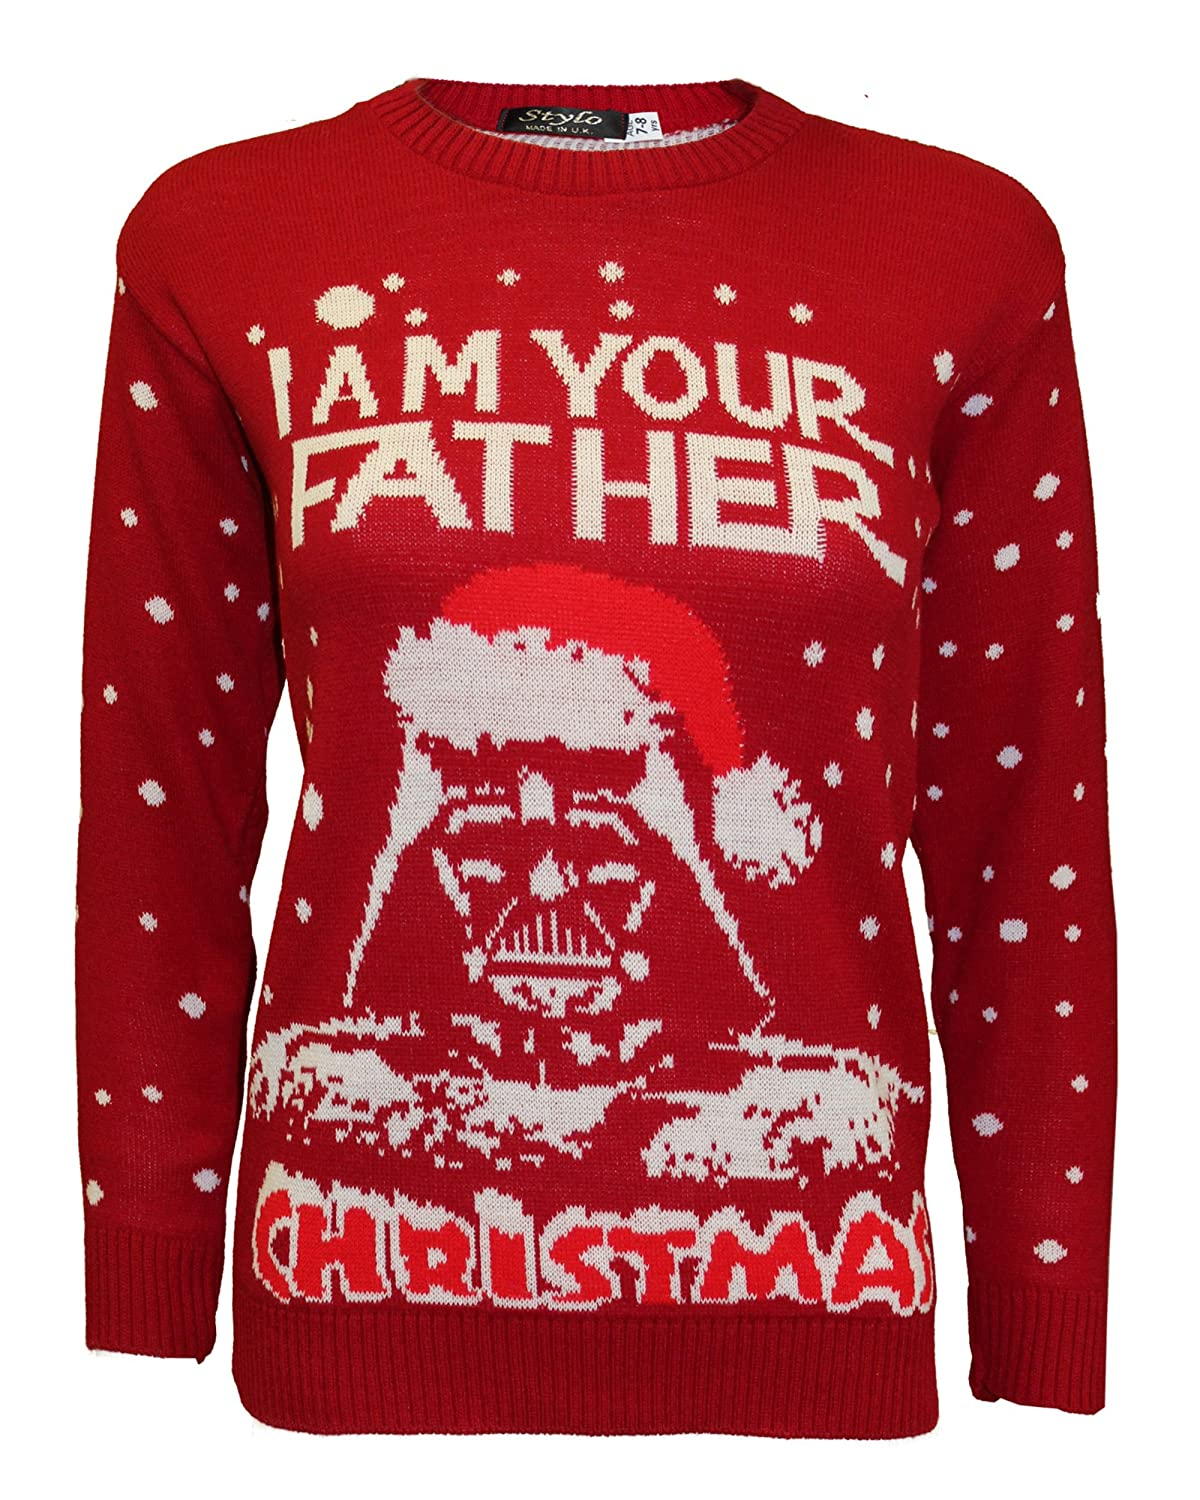 New Kids Girls Boys Knitted Xmas Star Wars Vintage Darth Vader Novelty Jumper Sweater Top 3-12 Years